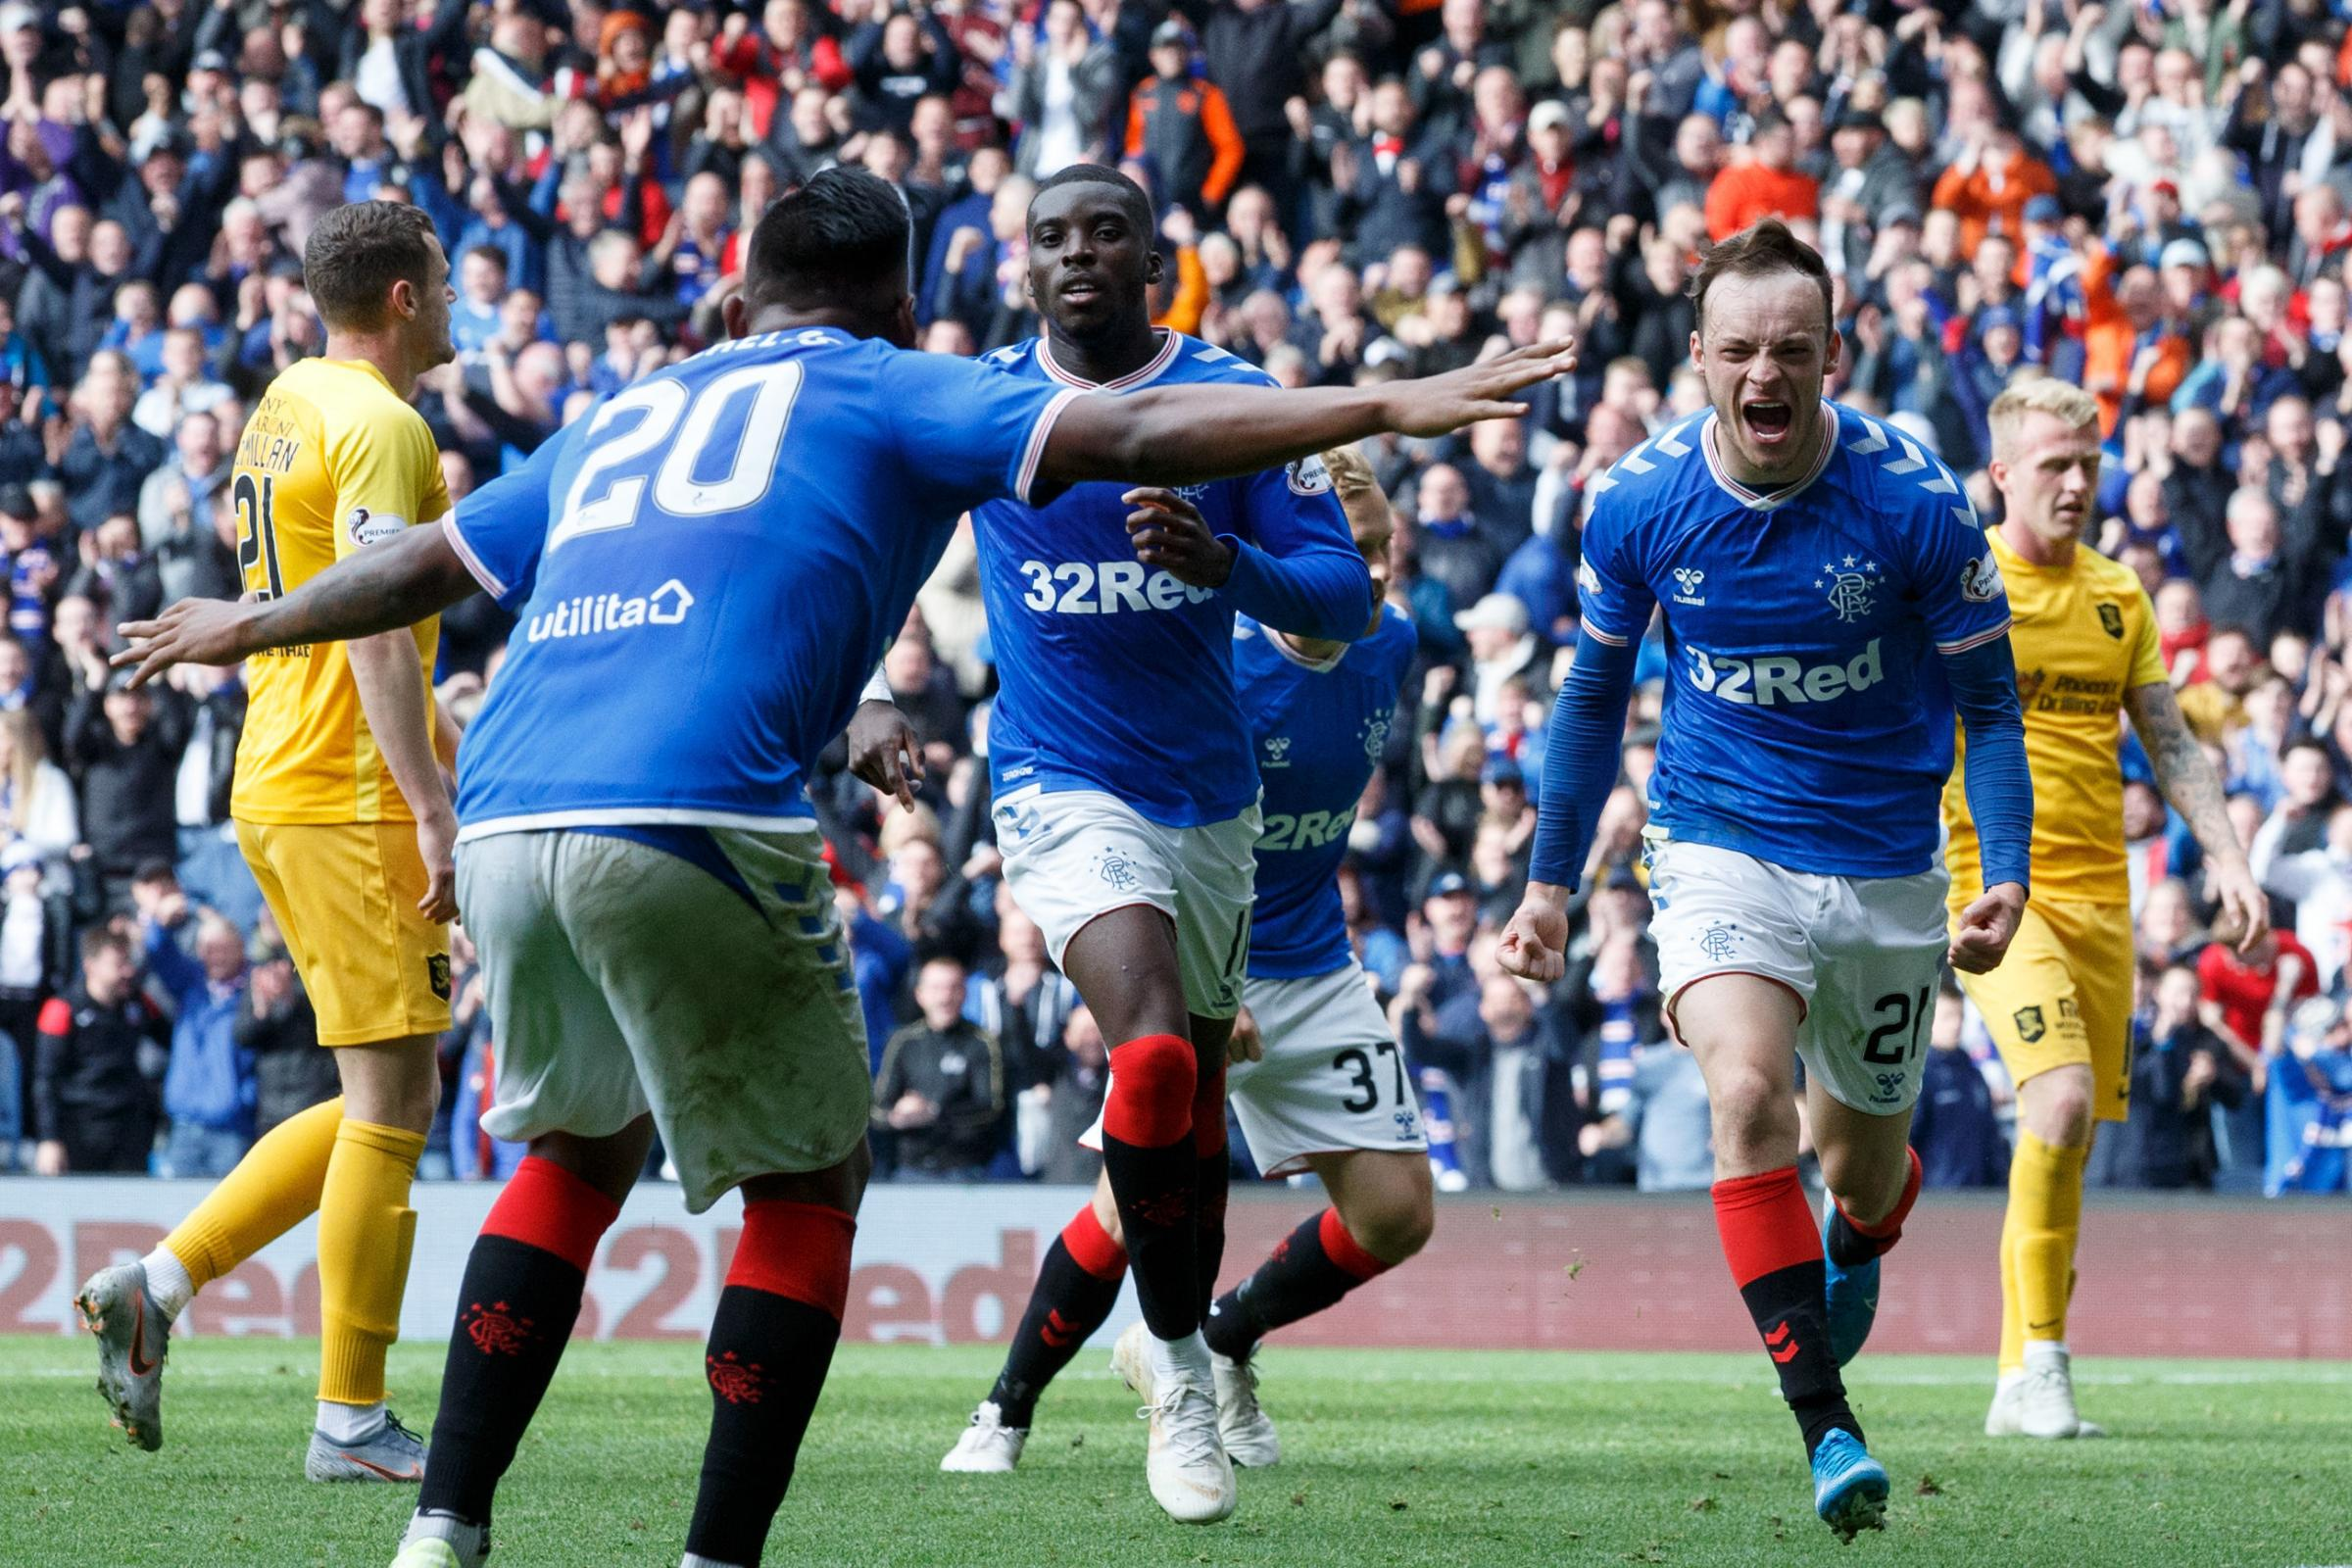 Rangers 3 Livingston 1: Brandon Barker seals Ibrox win as £7m man Ryan Kent limps out of debut